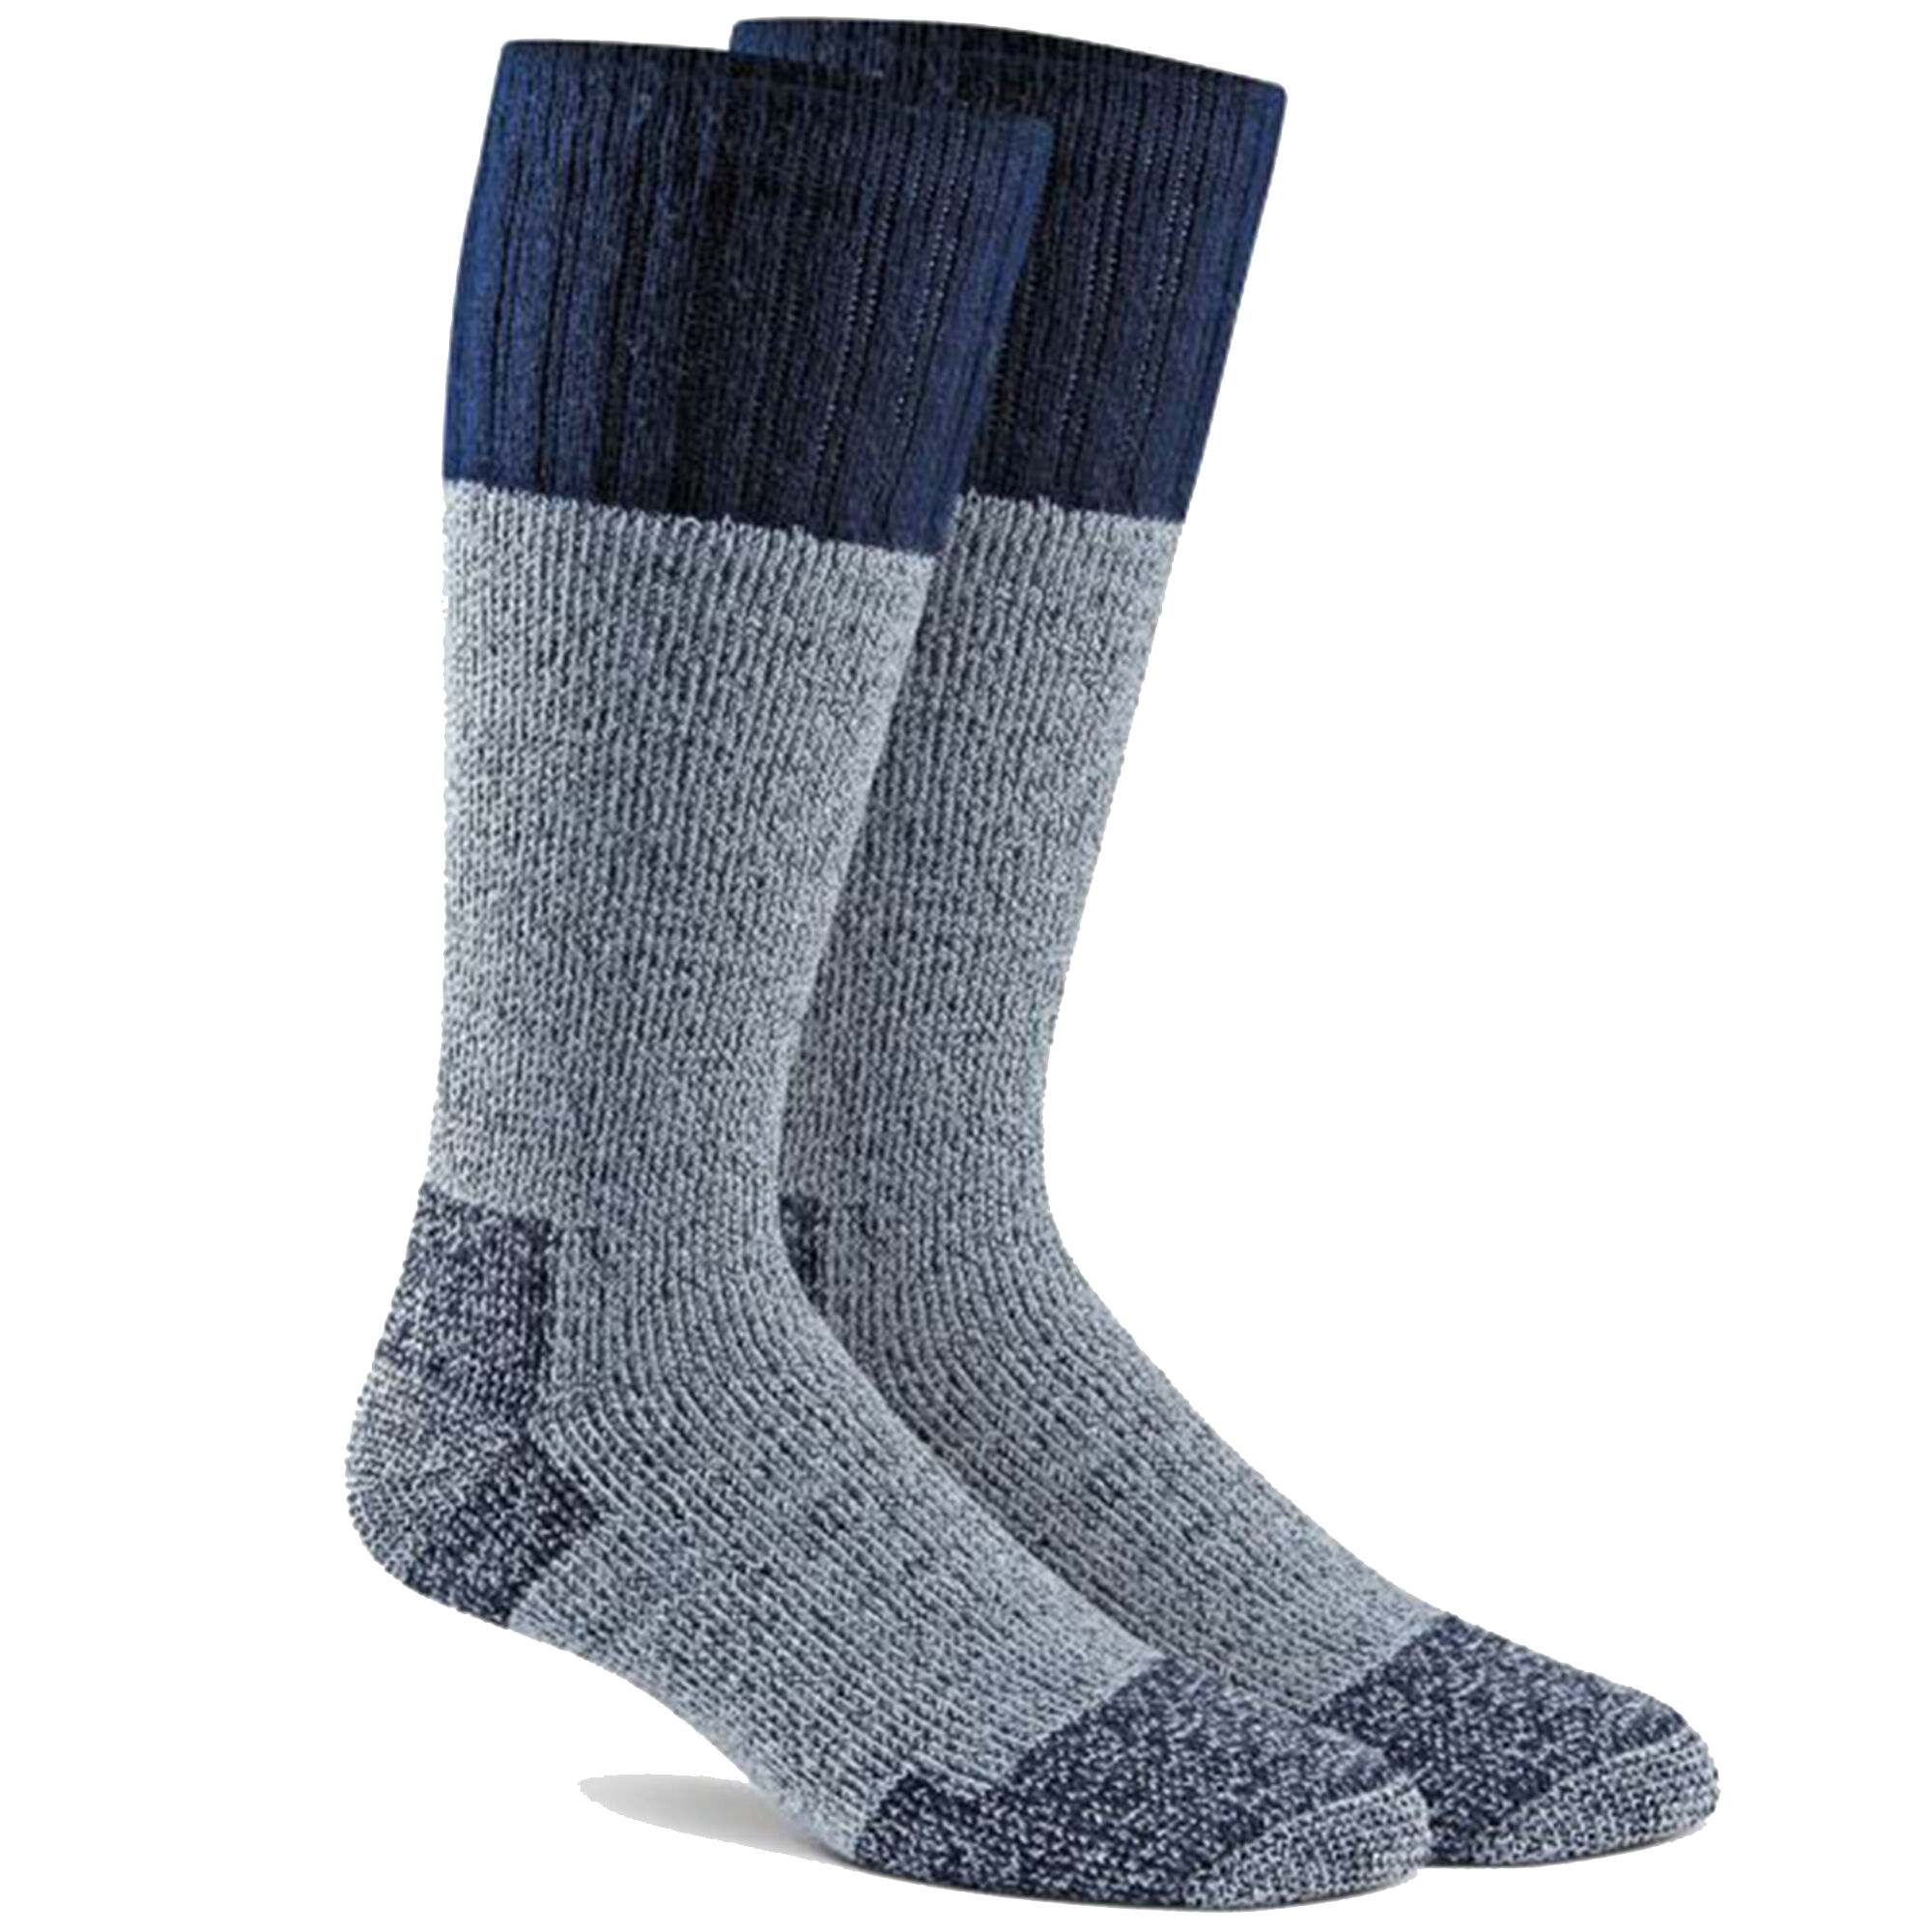 Fox River Wick Dry Therm-A-Wick Ultra-Lightweight Liner Socks WHITE